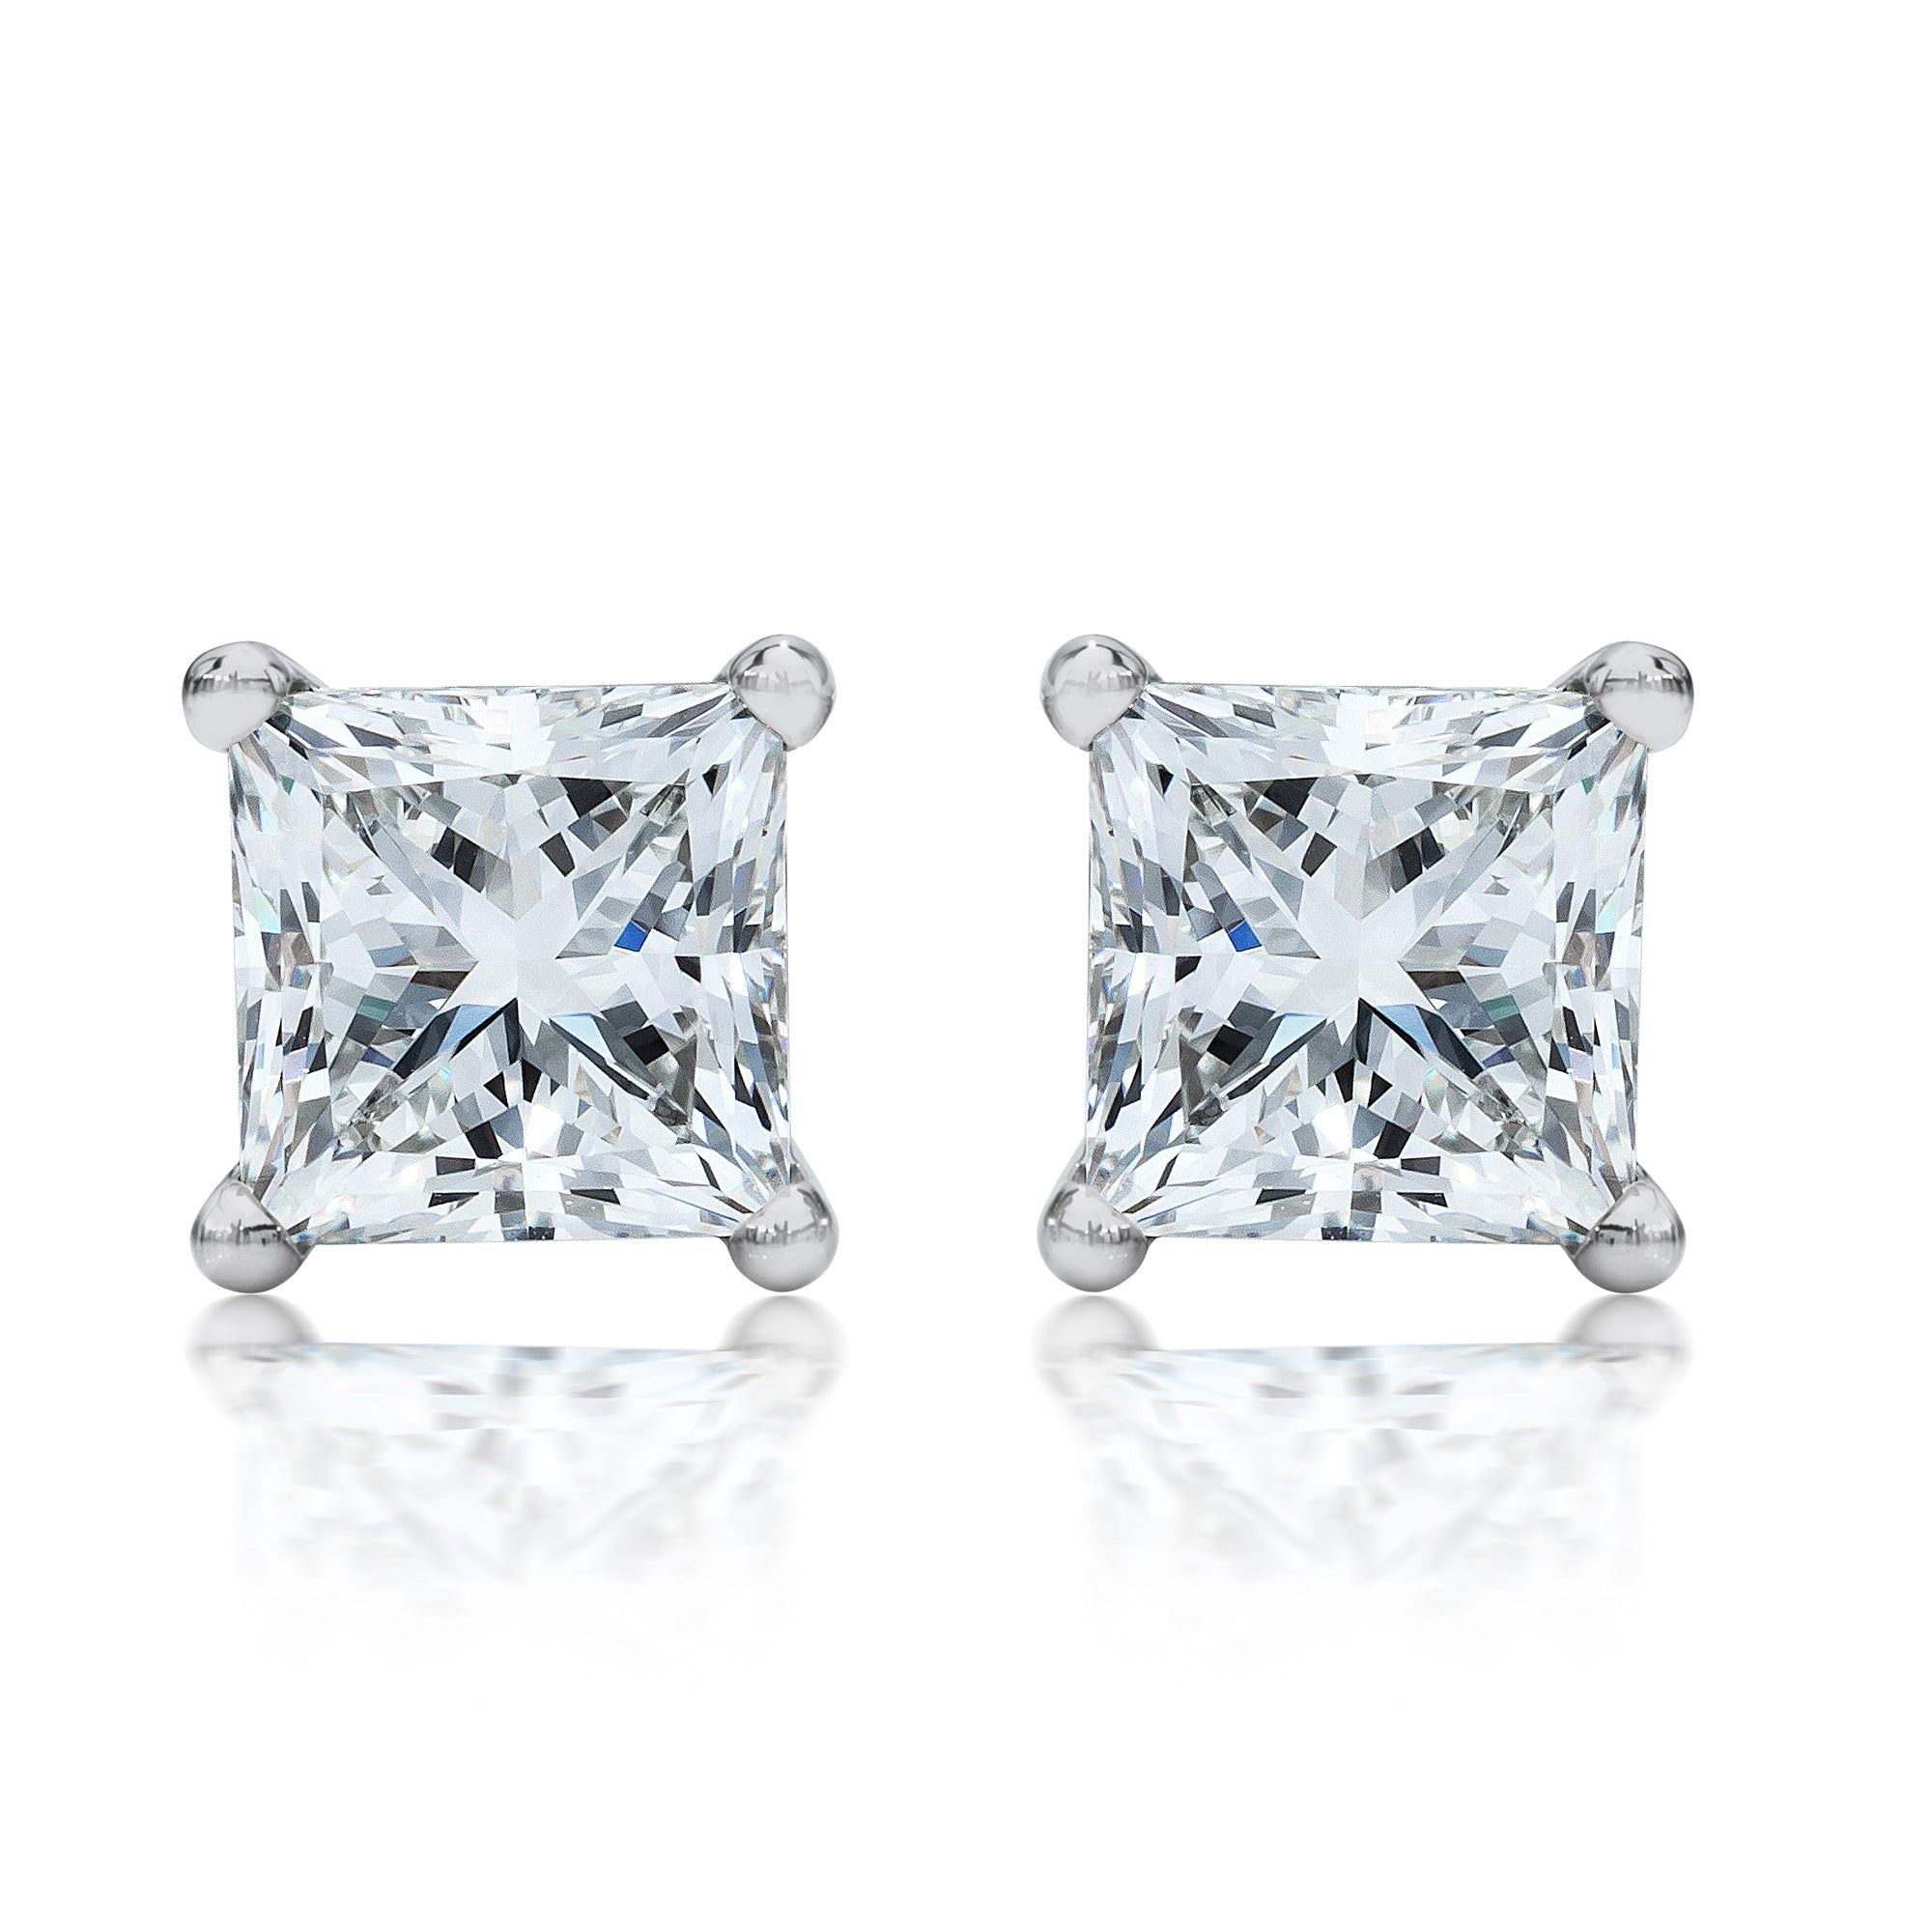 isabelle shaped please unusual rings loyesdiamonds more click engagement cut loyes s square shape princess for diamond ie